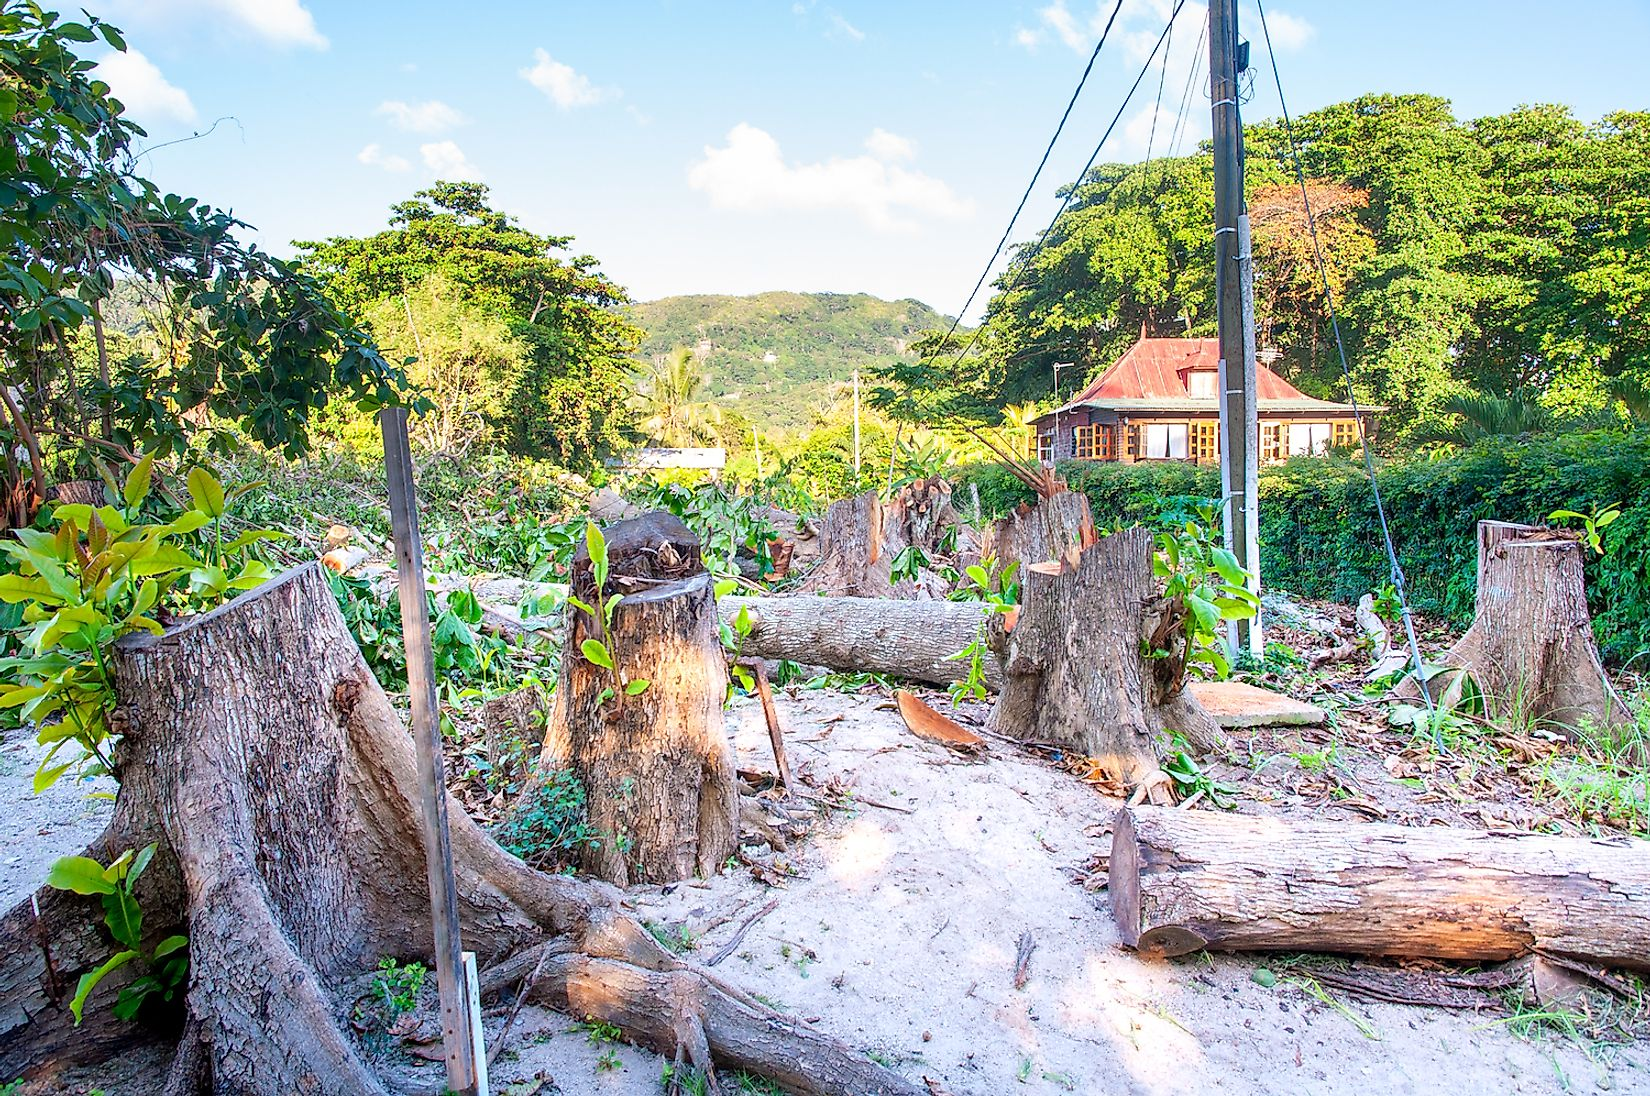 Forest trees cut down for new construction work. Image credit: Massimiliano Finzi/Shutterstock.com